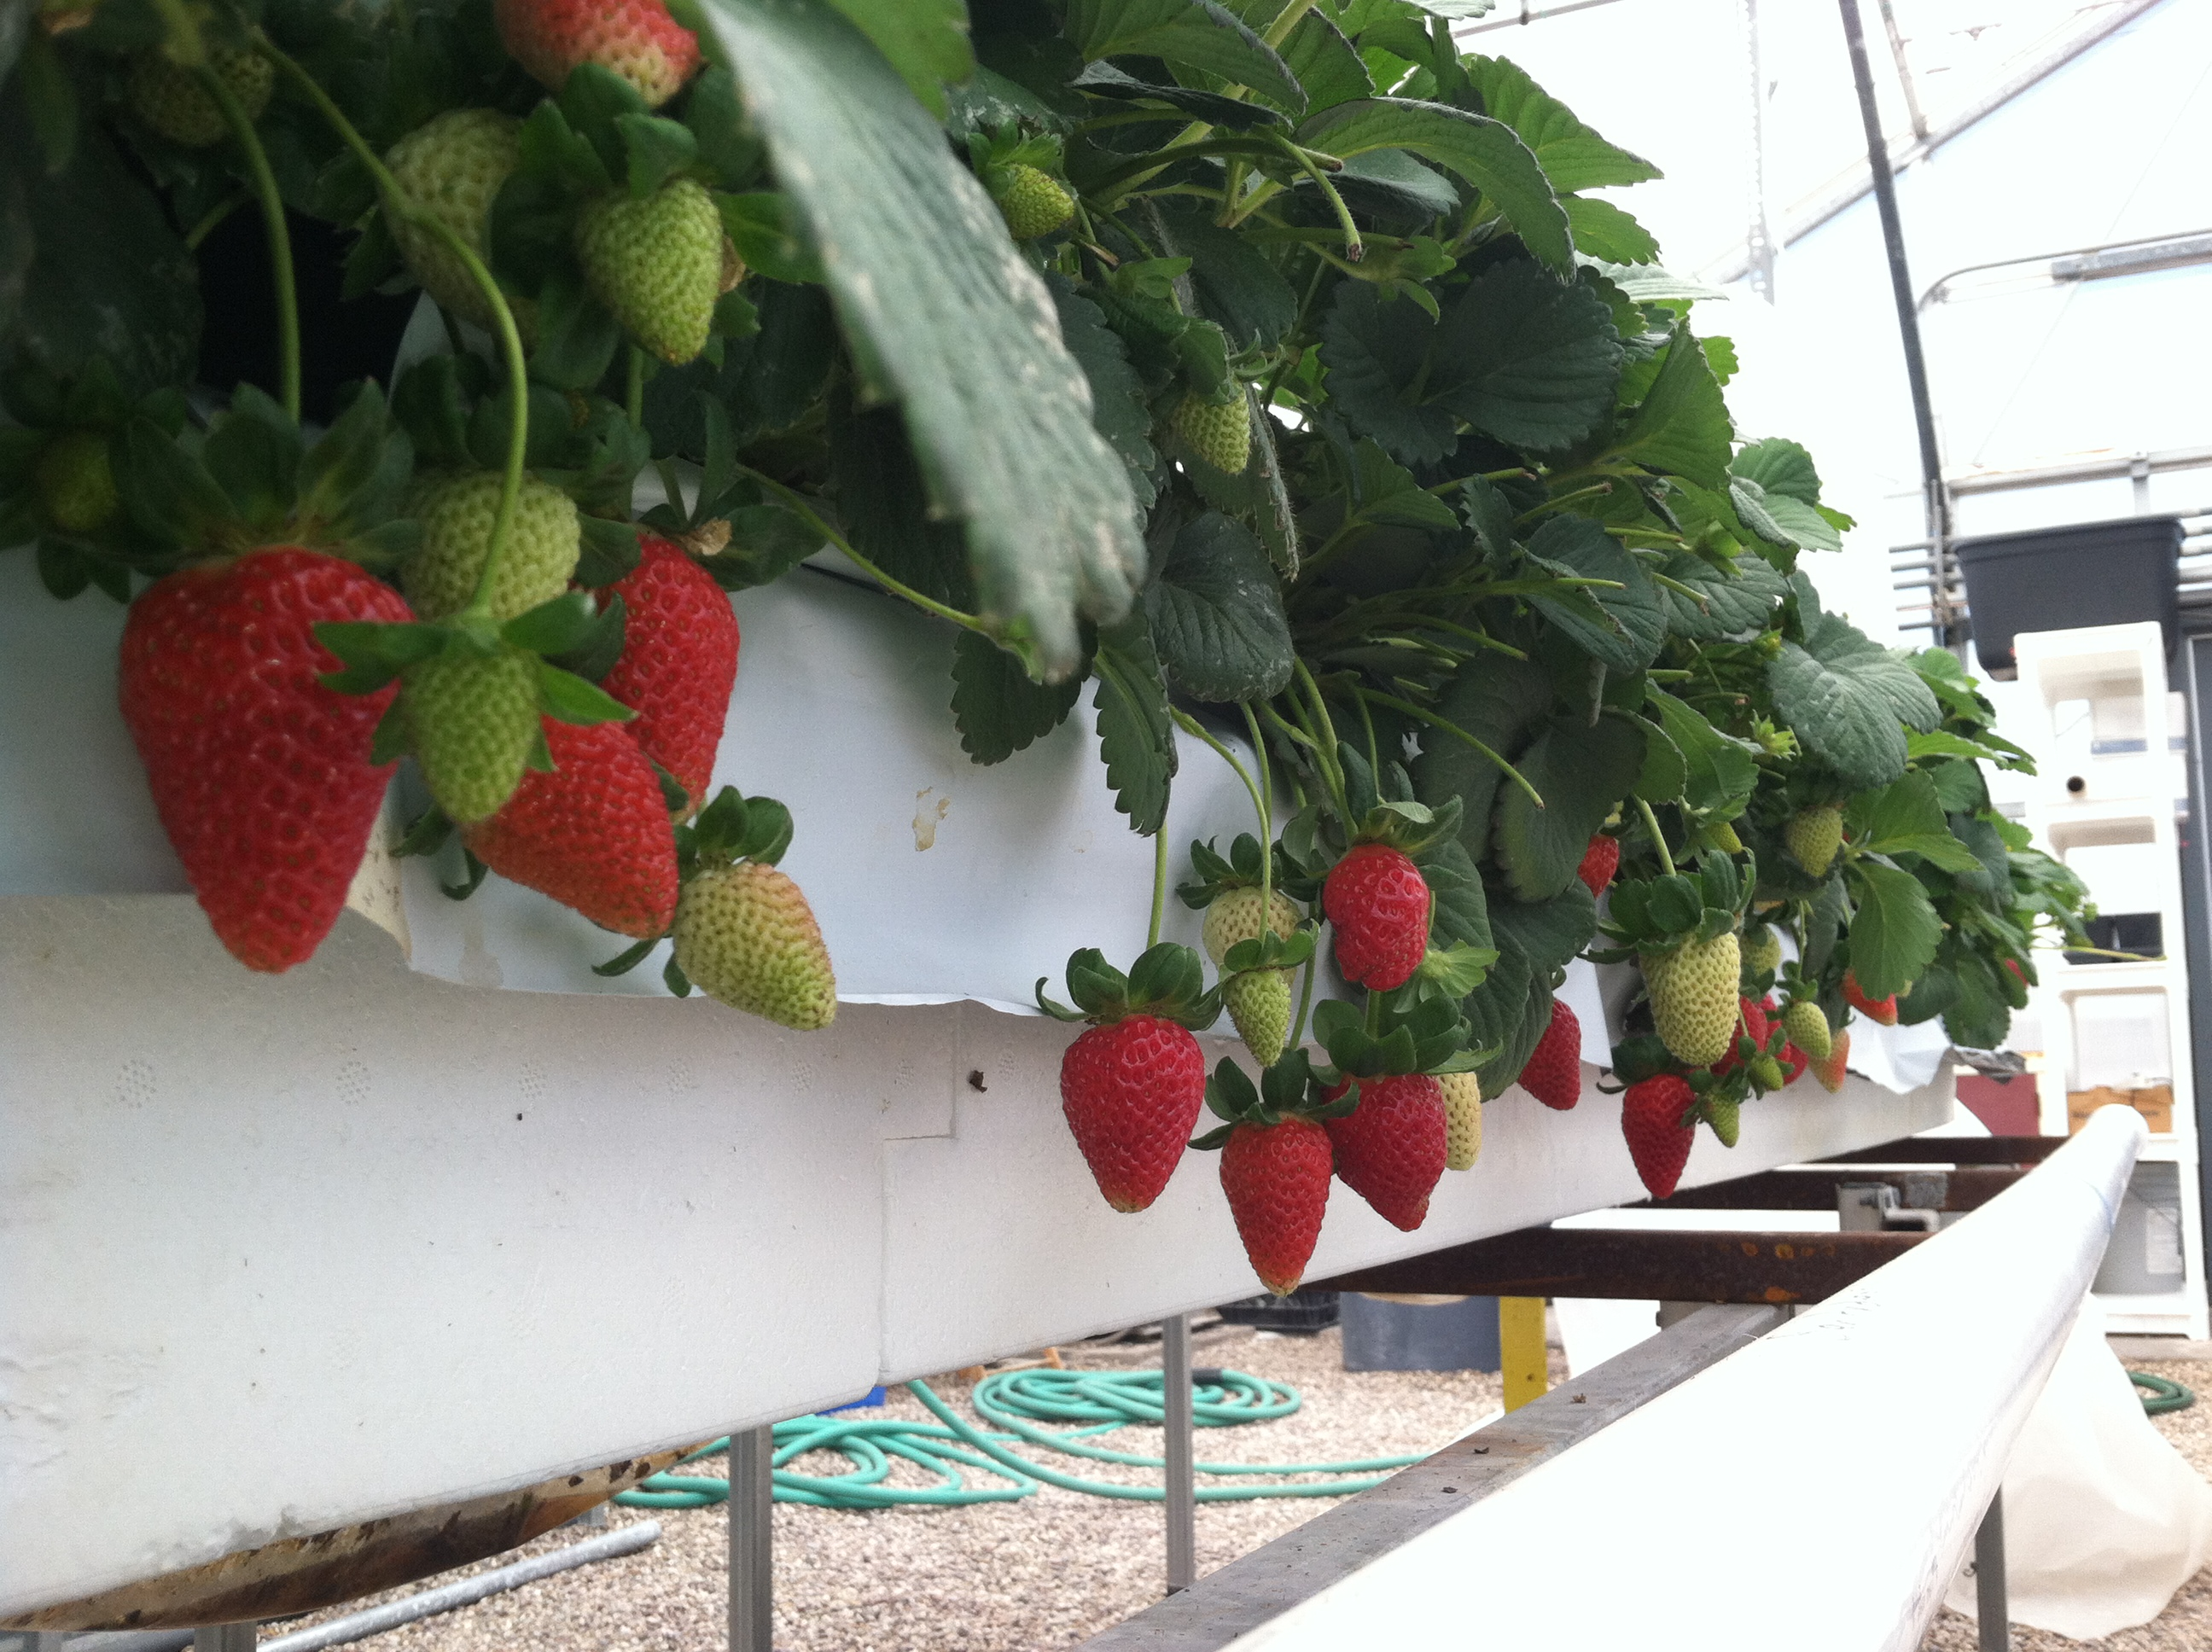 Image result for Hydroponic Strawberries